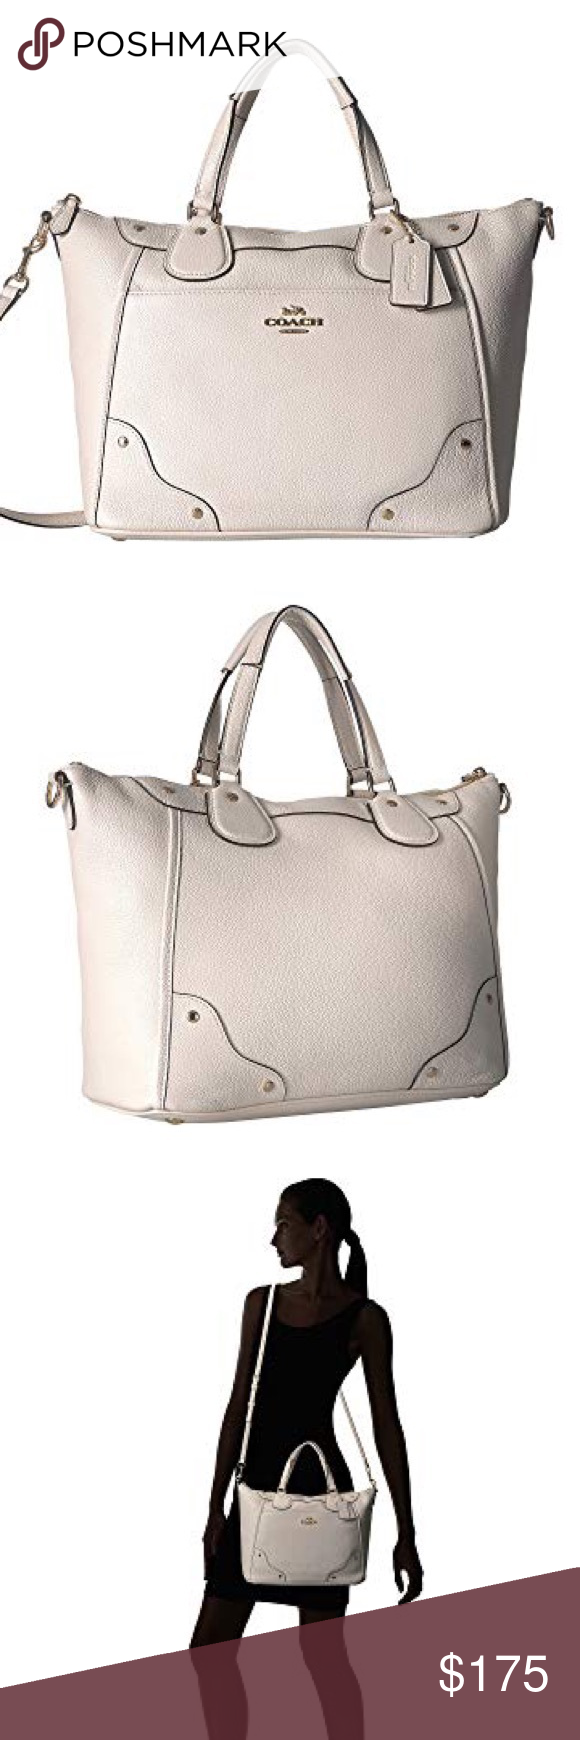 625660f5d Coach Grain Leather Mickie Satchel Coach Grain Leather Mickie Satchel in  Chalk White • Zipper closure • 2 rolled carrying handles • Removable &  adjustable ...